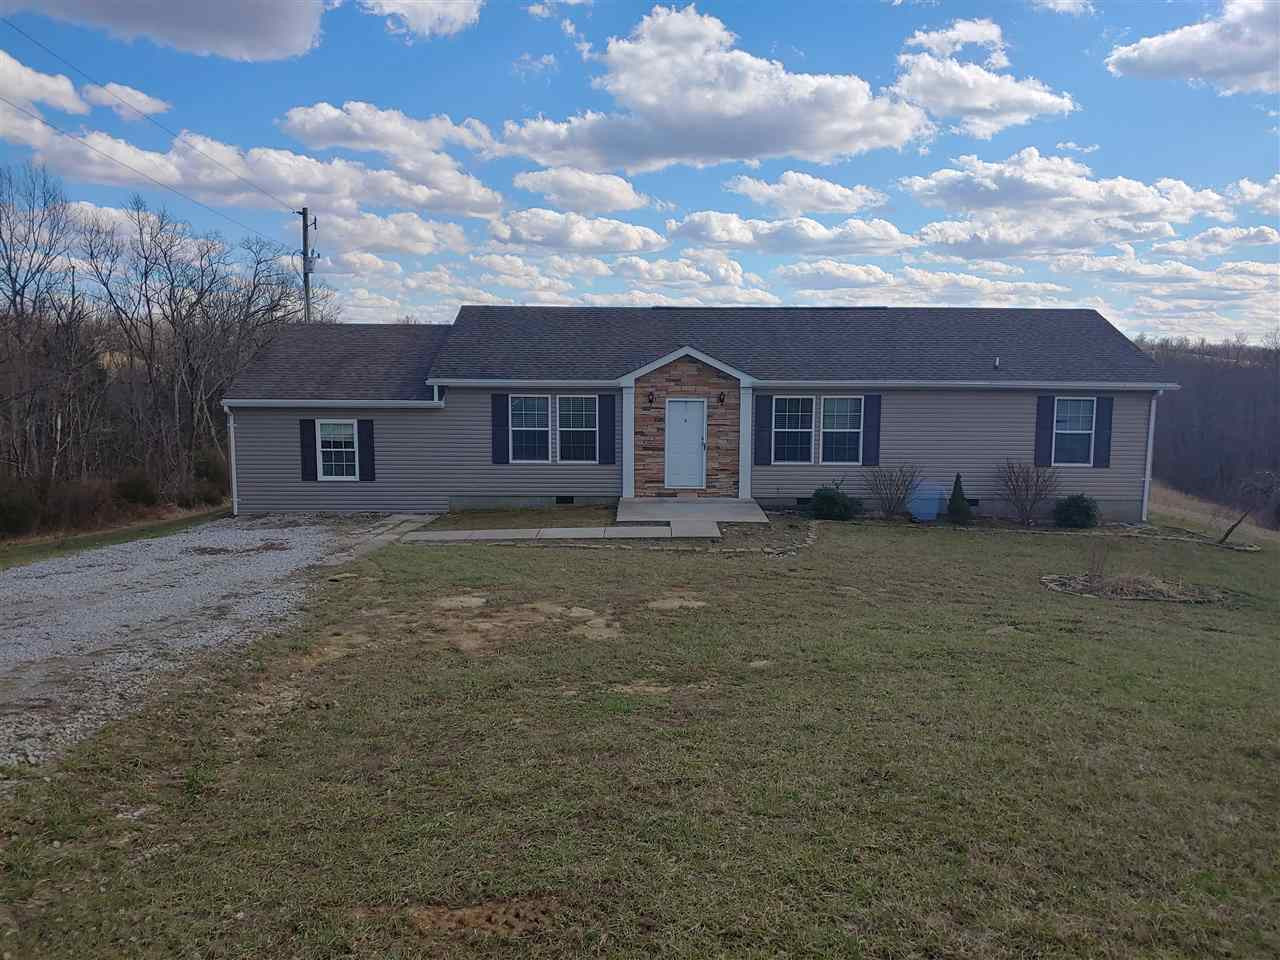 Photo 2 for 17735 New Columbus Rd Corinth, KY 41010